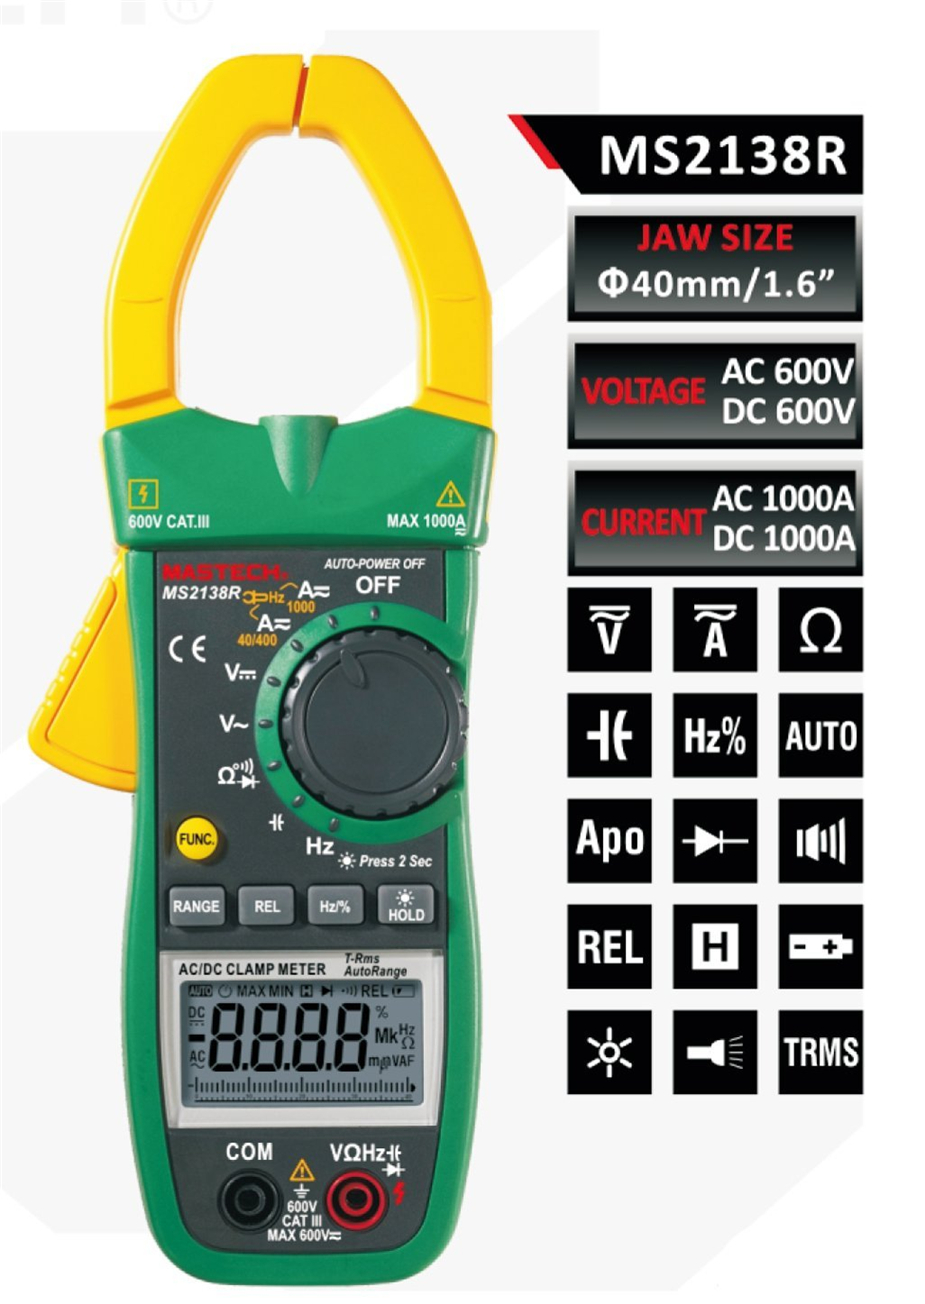 Hot MASTECH MS2138R 4000 Counts Digital AC DC Clamp Meter Multimeter Voltage Current Capacitance Resistance Tester mastech ms2138 digital 1000a ac dc clamp meter multimeter electrical current 4000 counts voltage tester with high performance